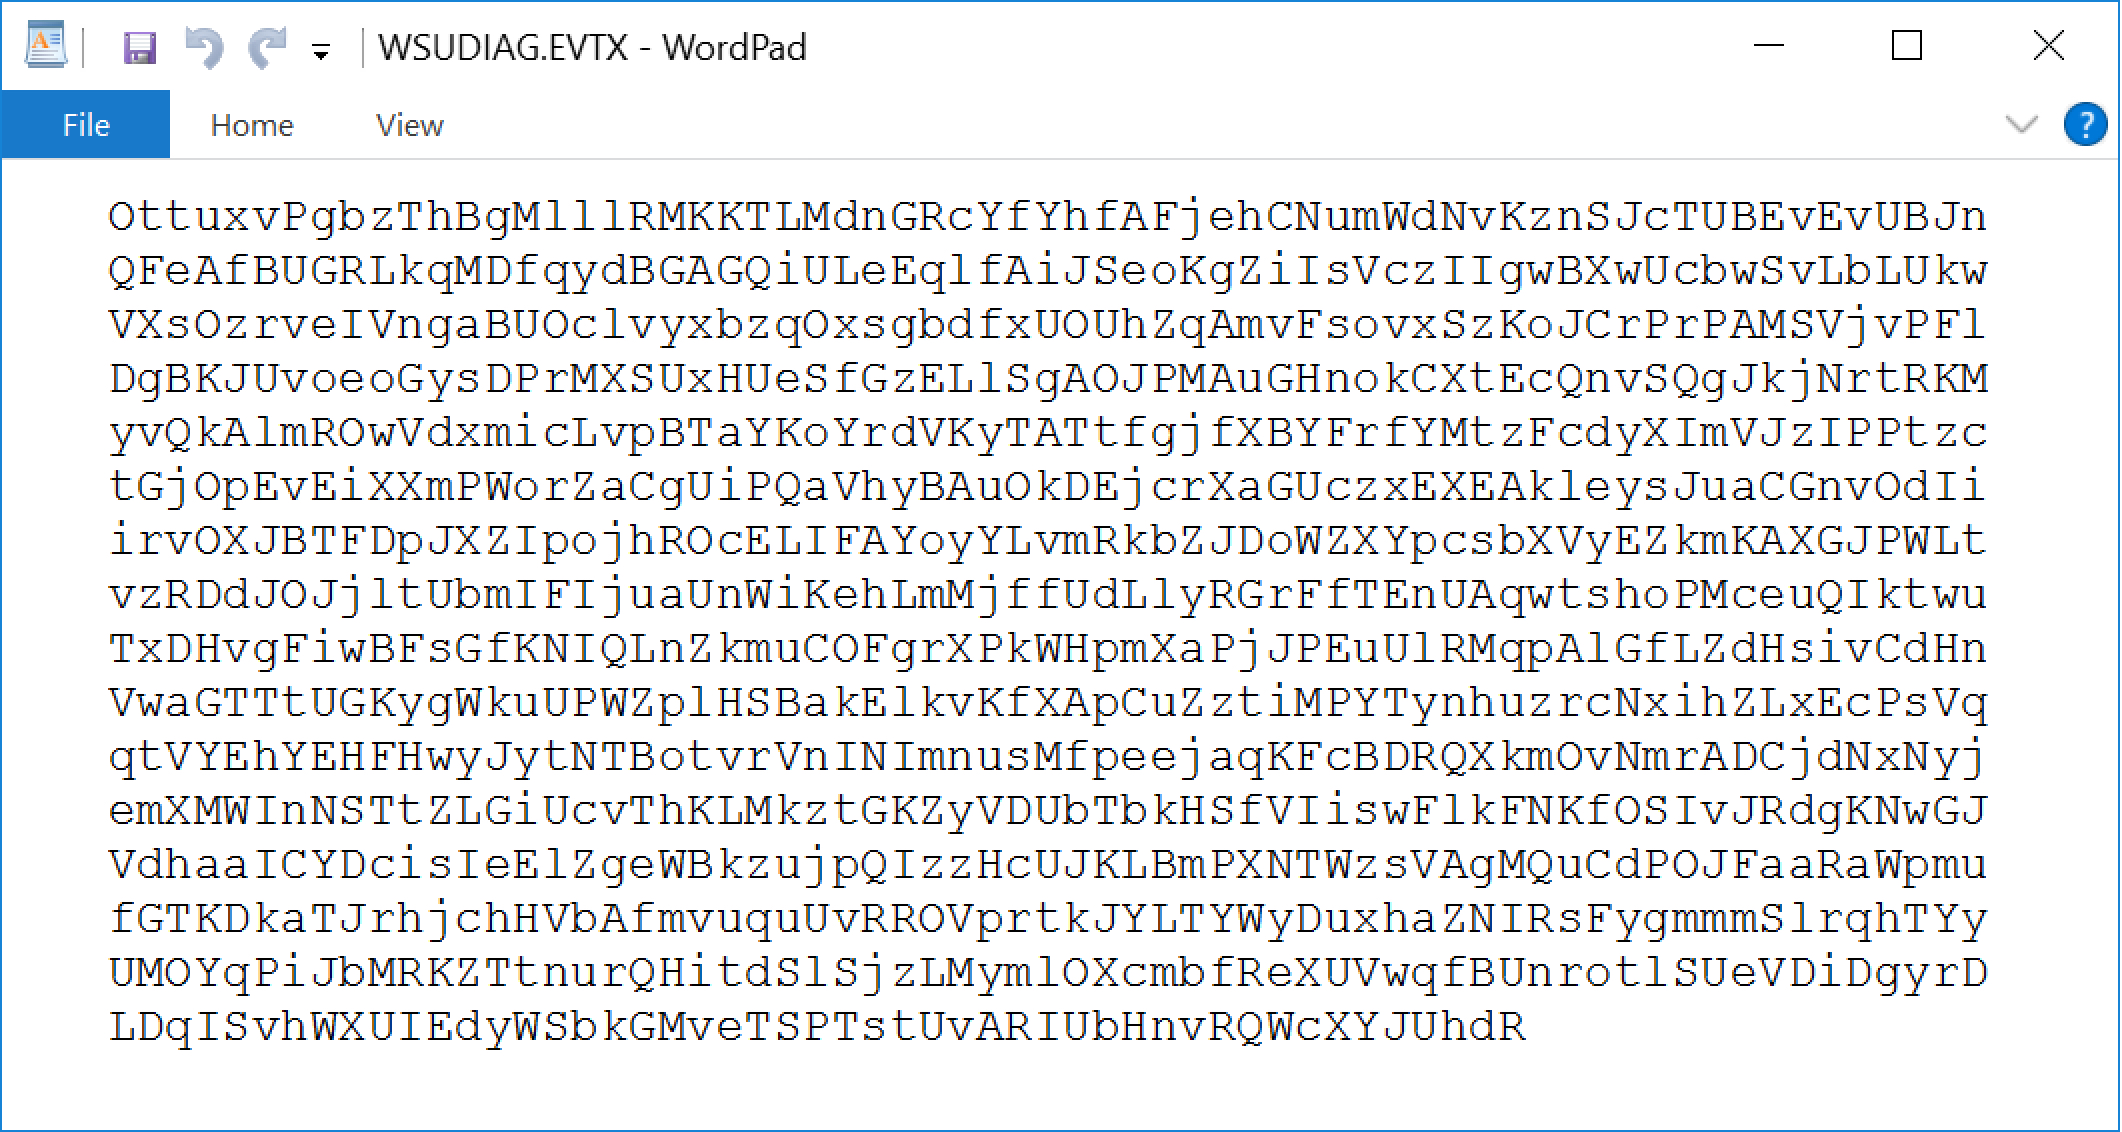 Displayed in WordPad, we see the contents of the text file, which is a random string.